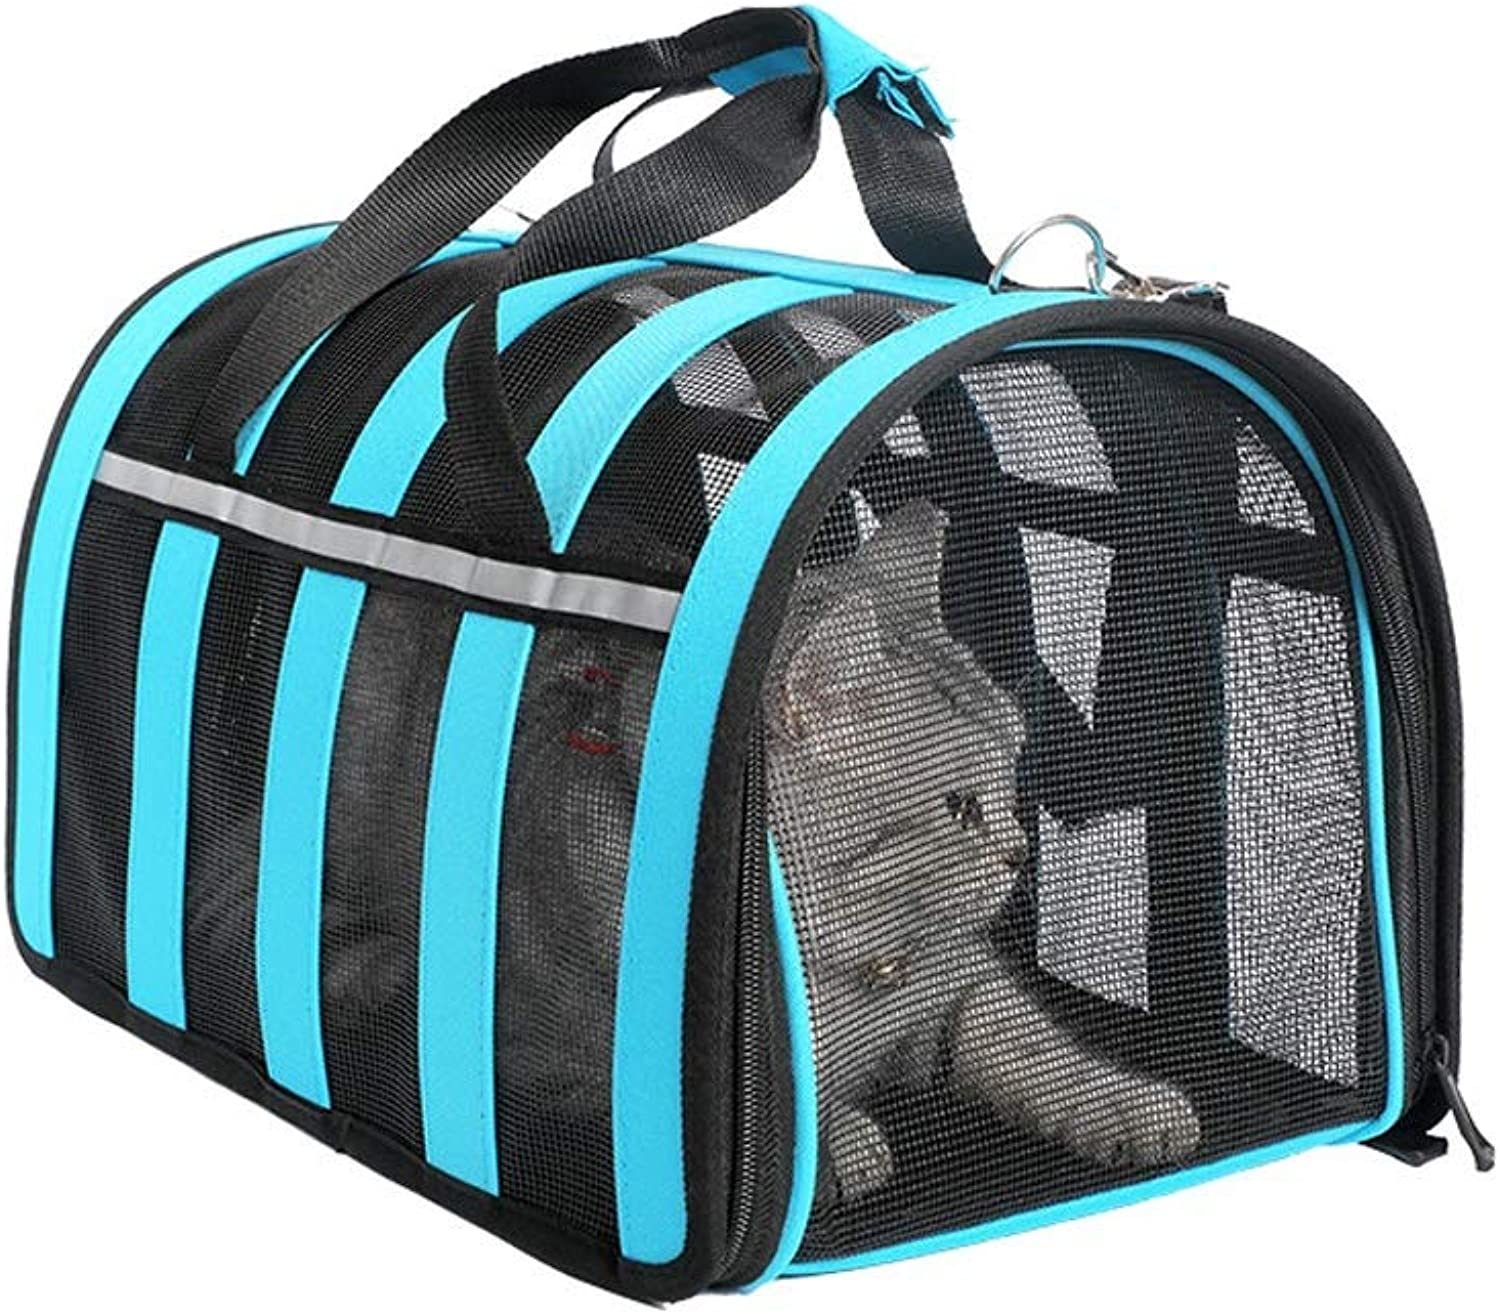 Airline Approved SoftSided Pet Travel Carrier for Dogs and Cats for Medium Puppy and Cats,Premium Zippers and Locking Clasps